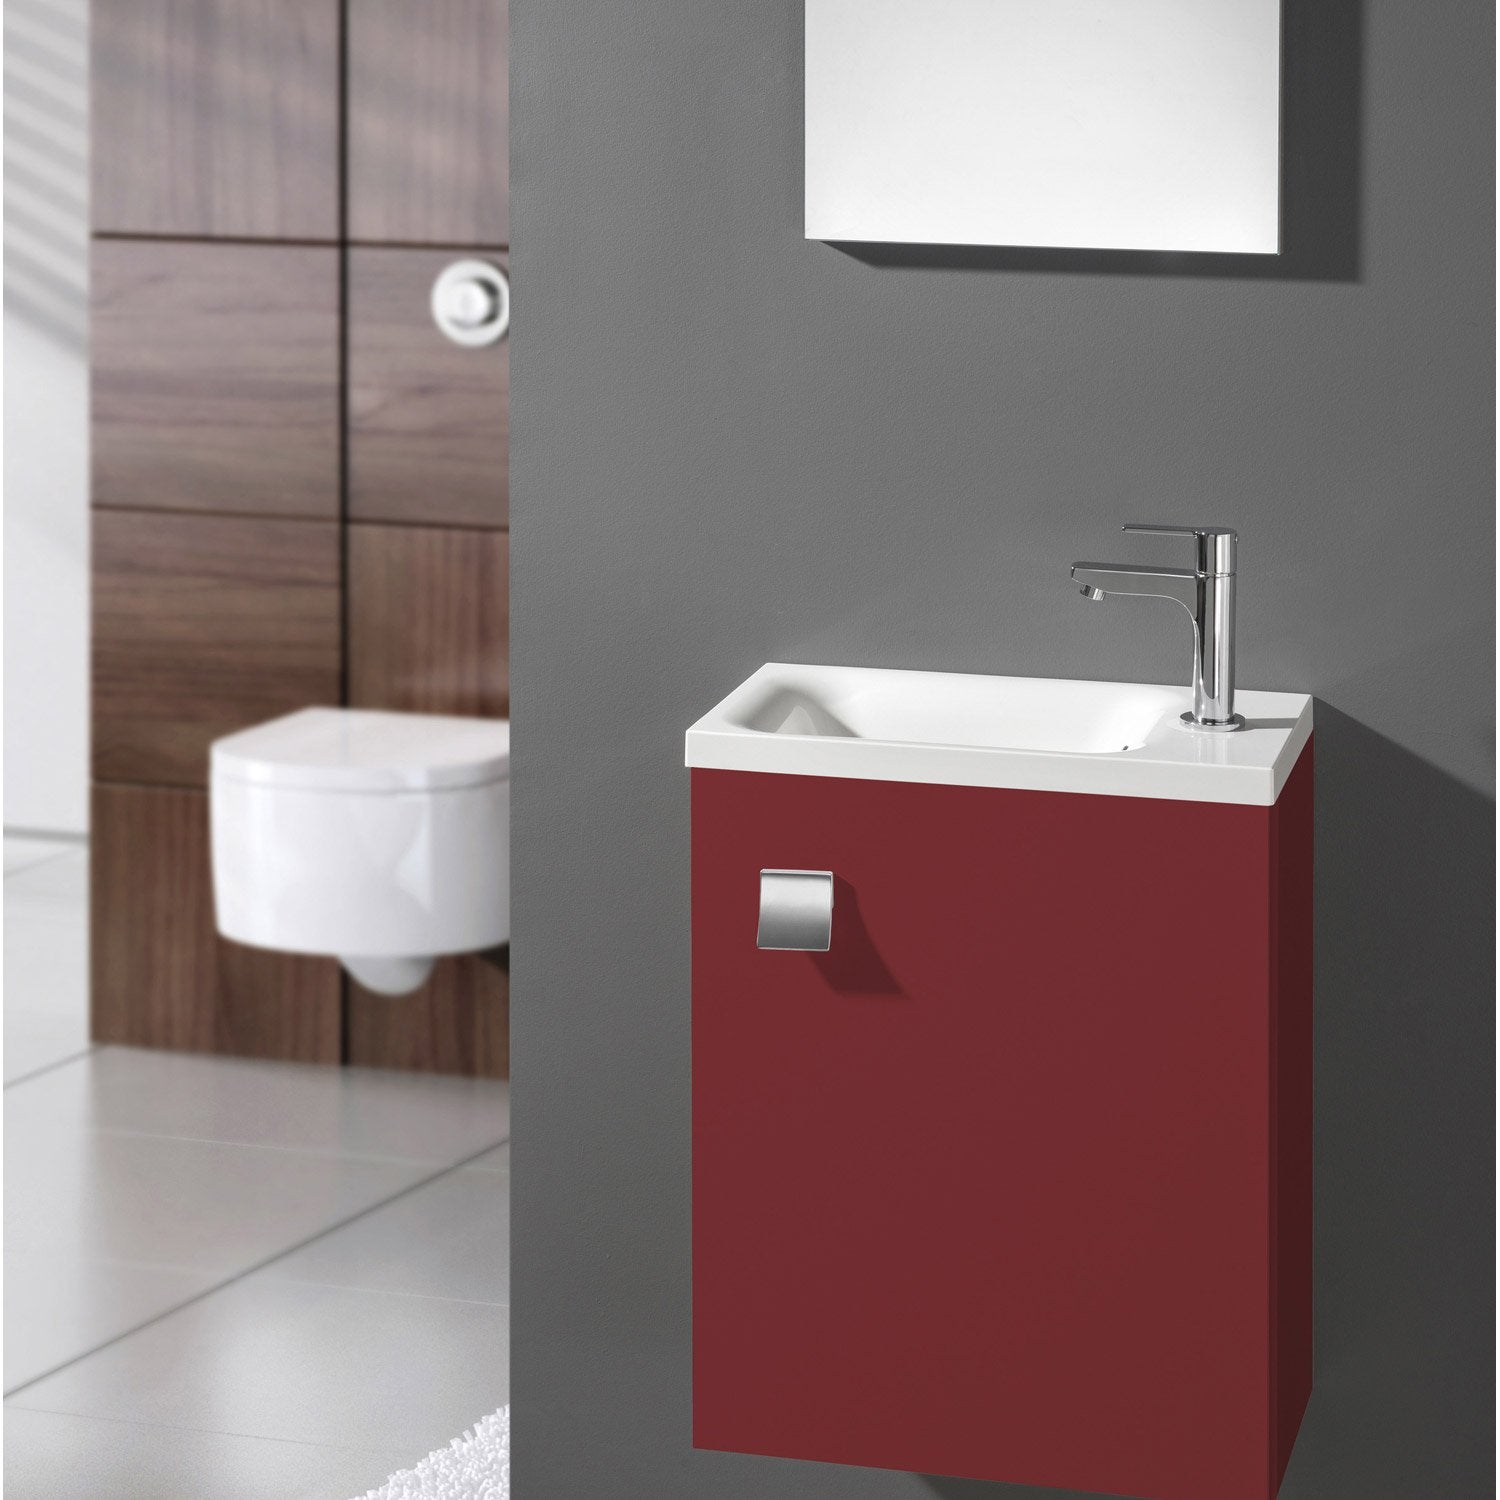 meuble lavabo avec machine laver awesome meuble machine a laver et seche linge with meuble. Black Bedroom Furniture Sets. Home Design Ideas